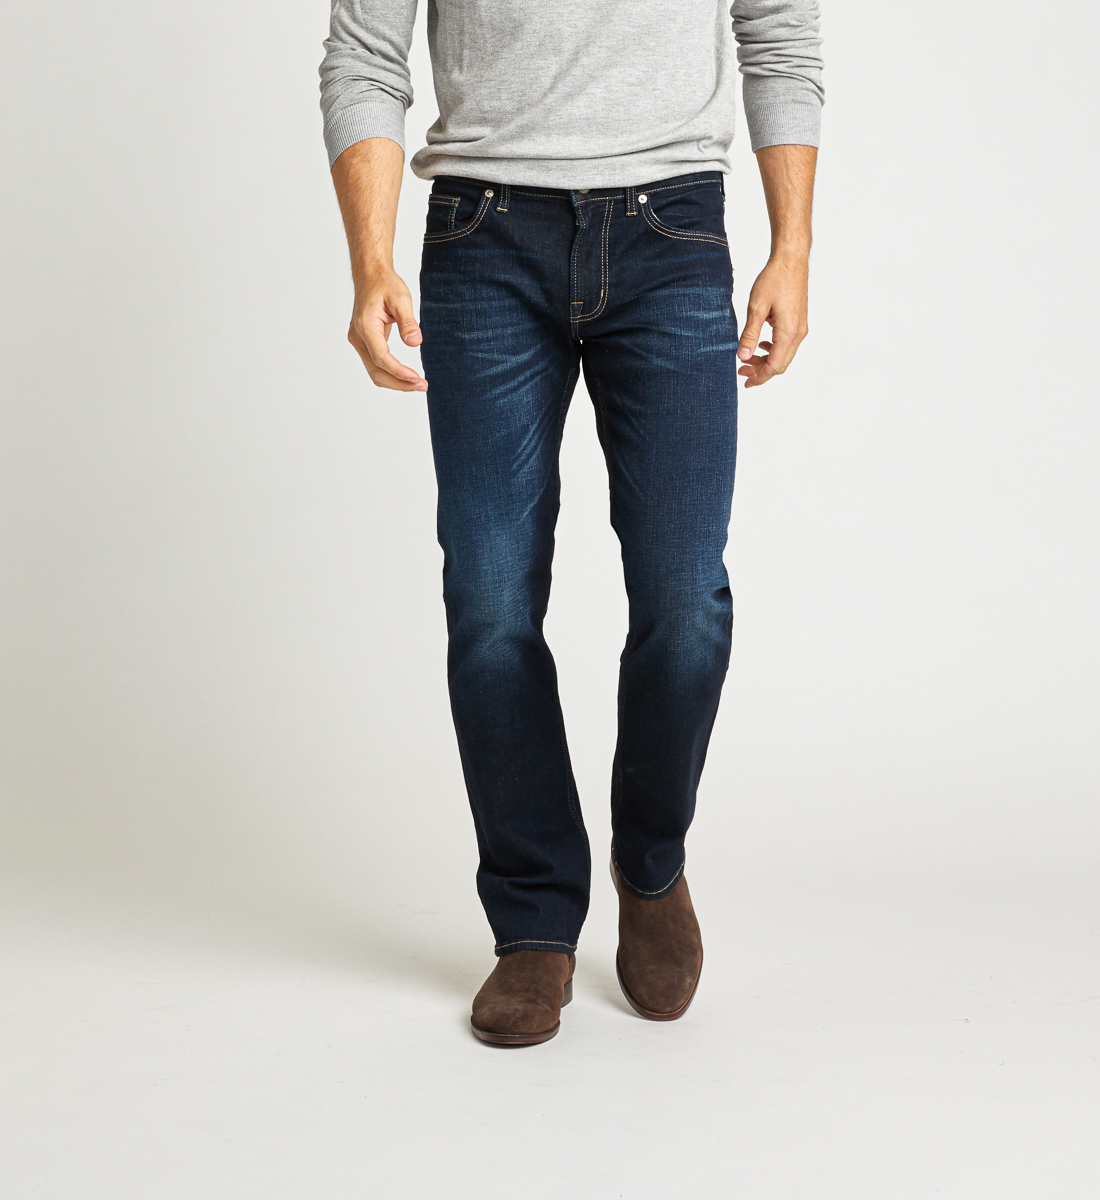 Allan Classic Fit Straight Jeans Front